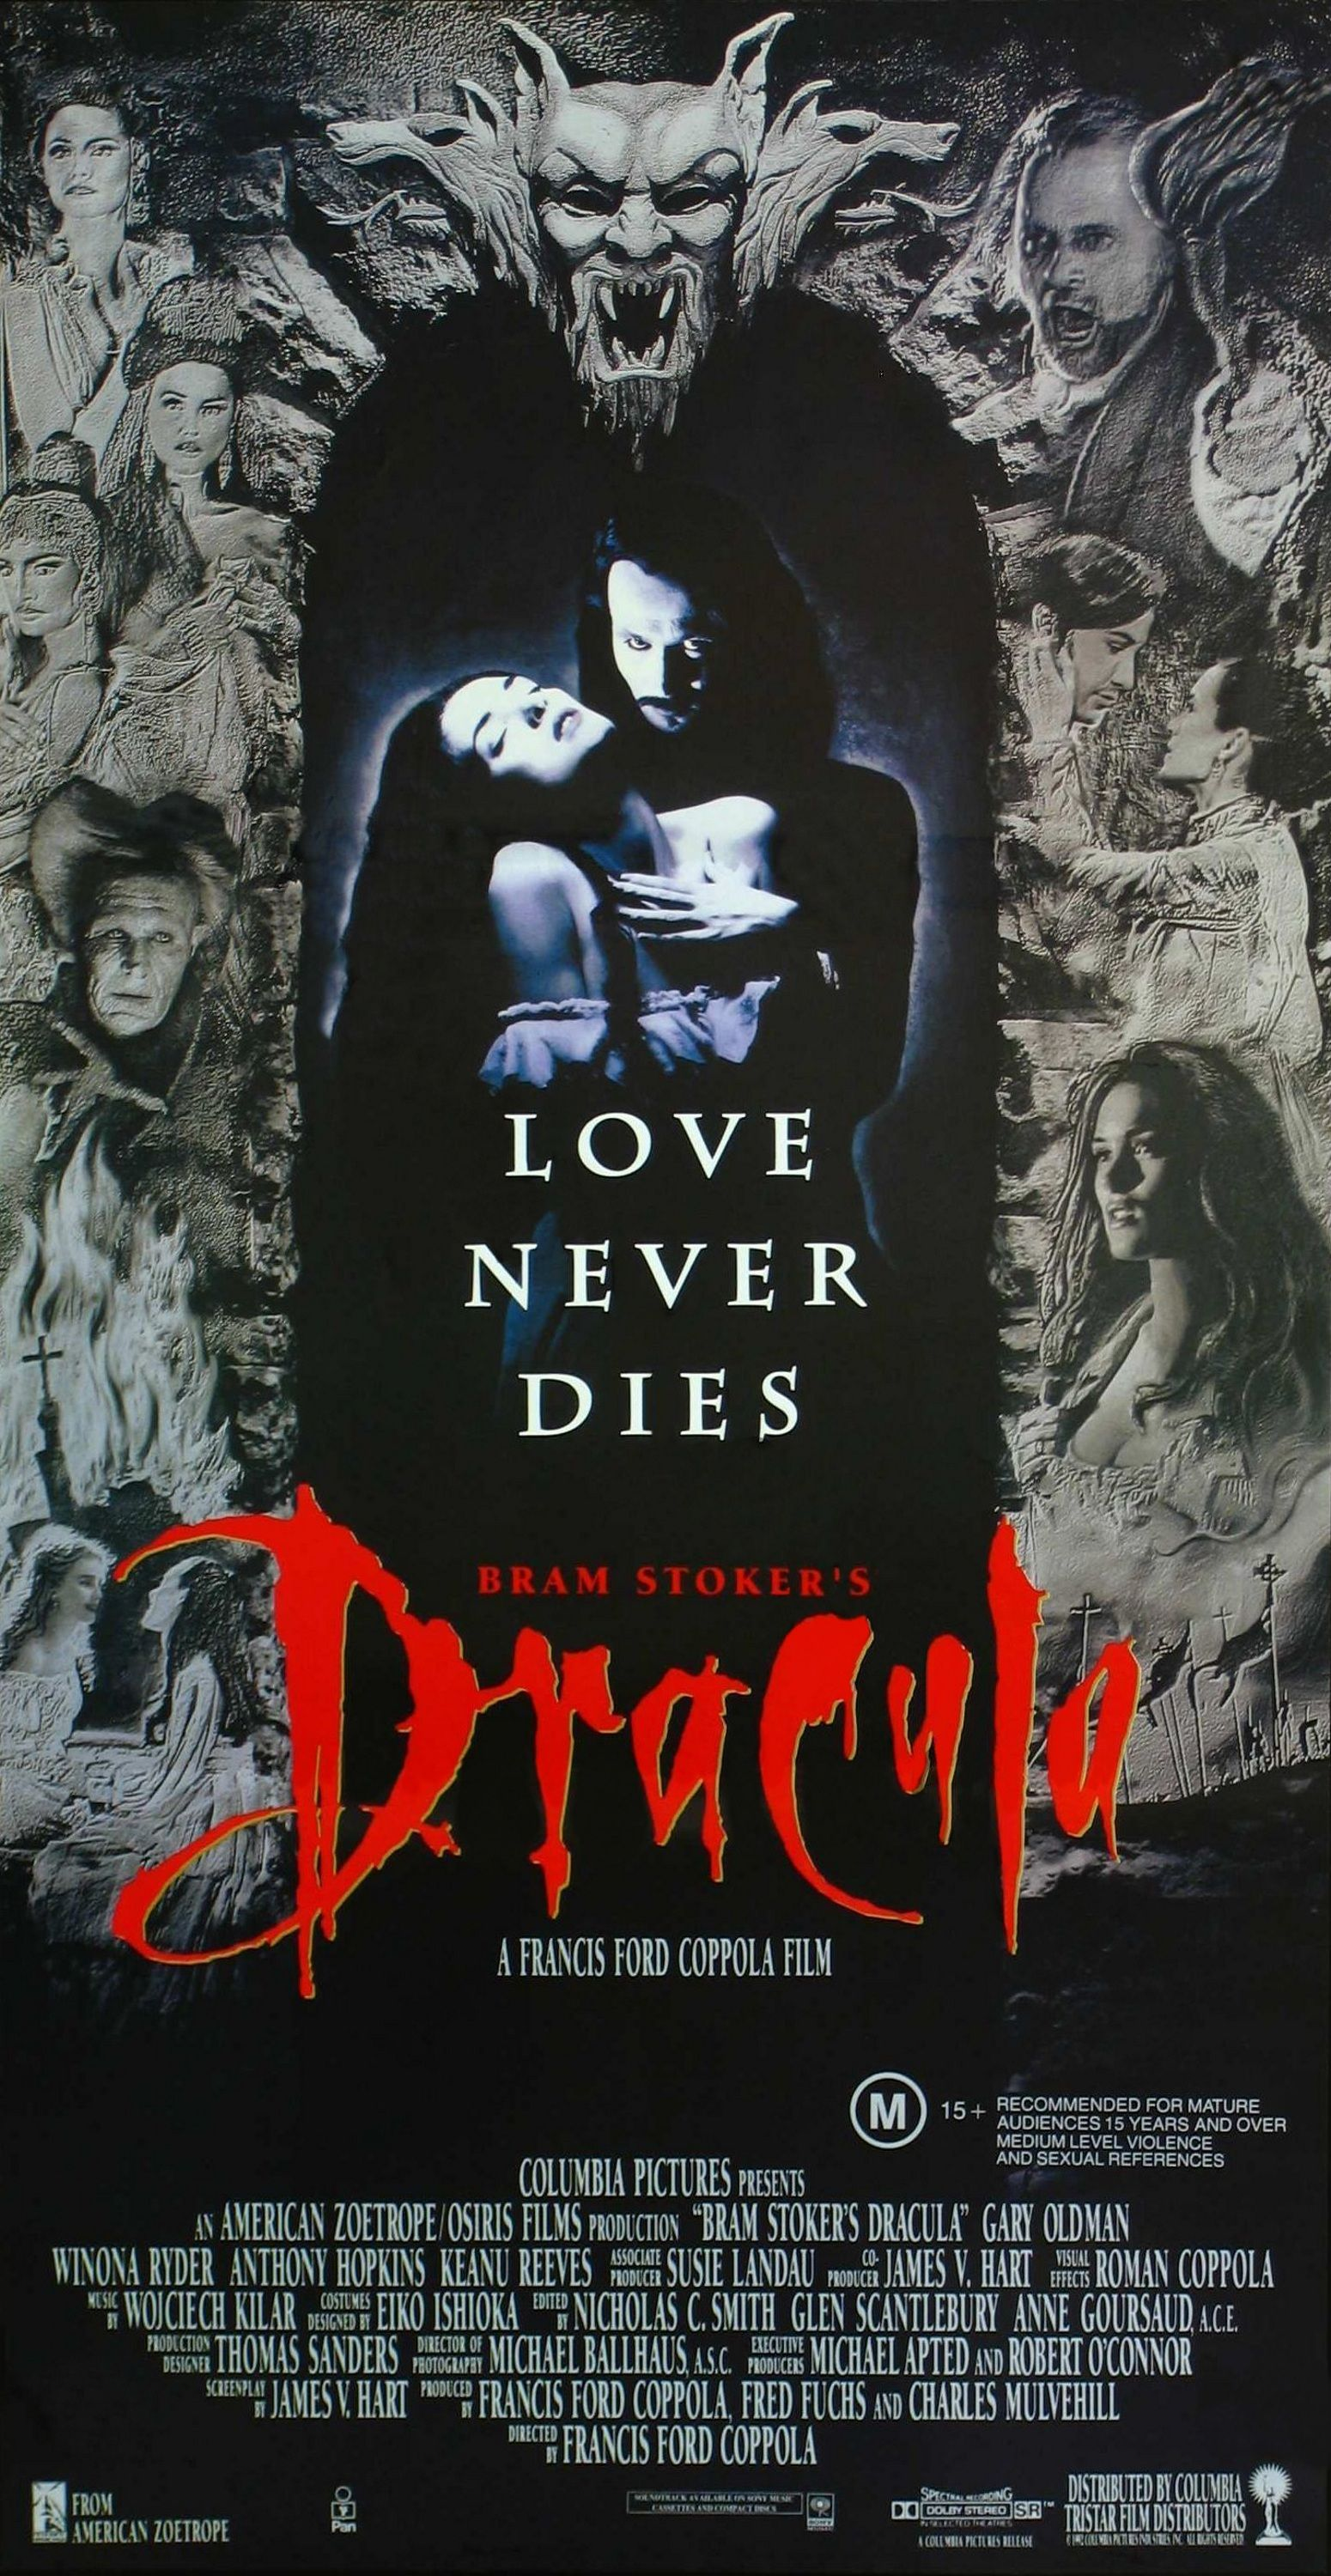 Comparison Of Bram Stokers Dracula And Coppola`S Dracula